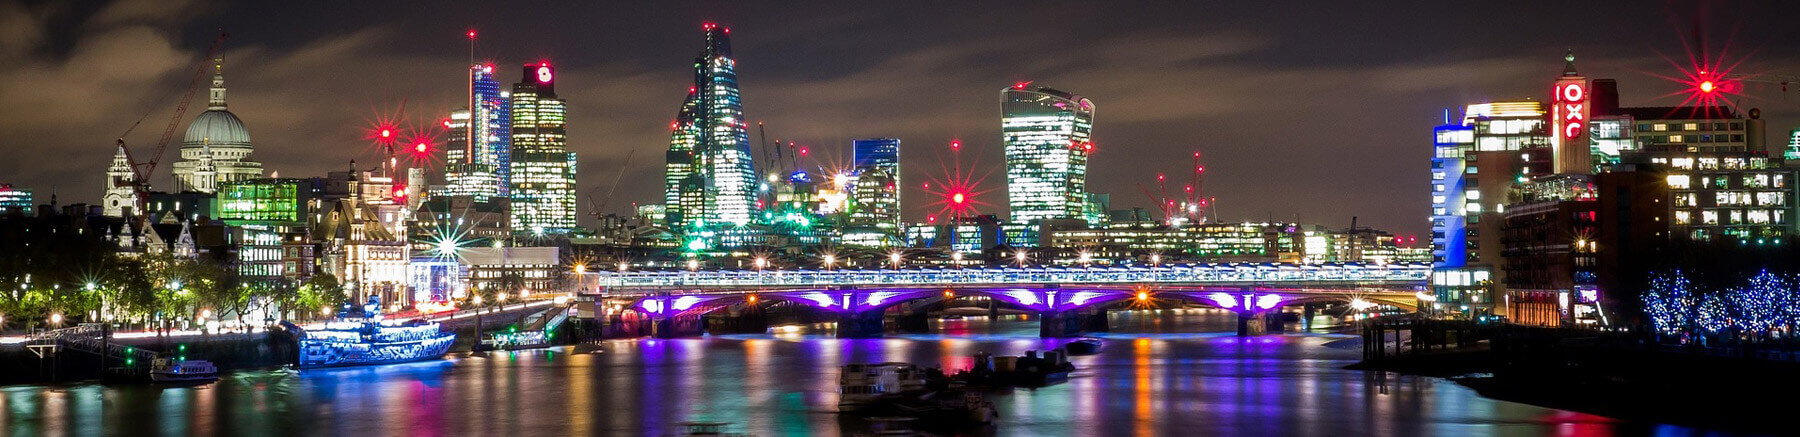 Night view of London over the Thames river